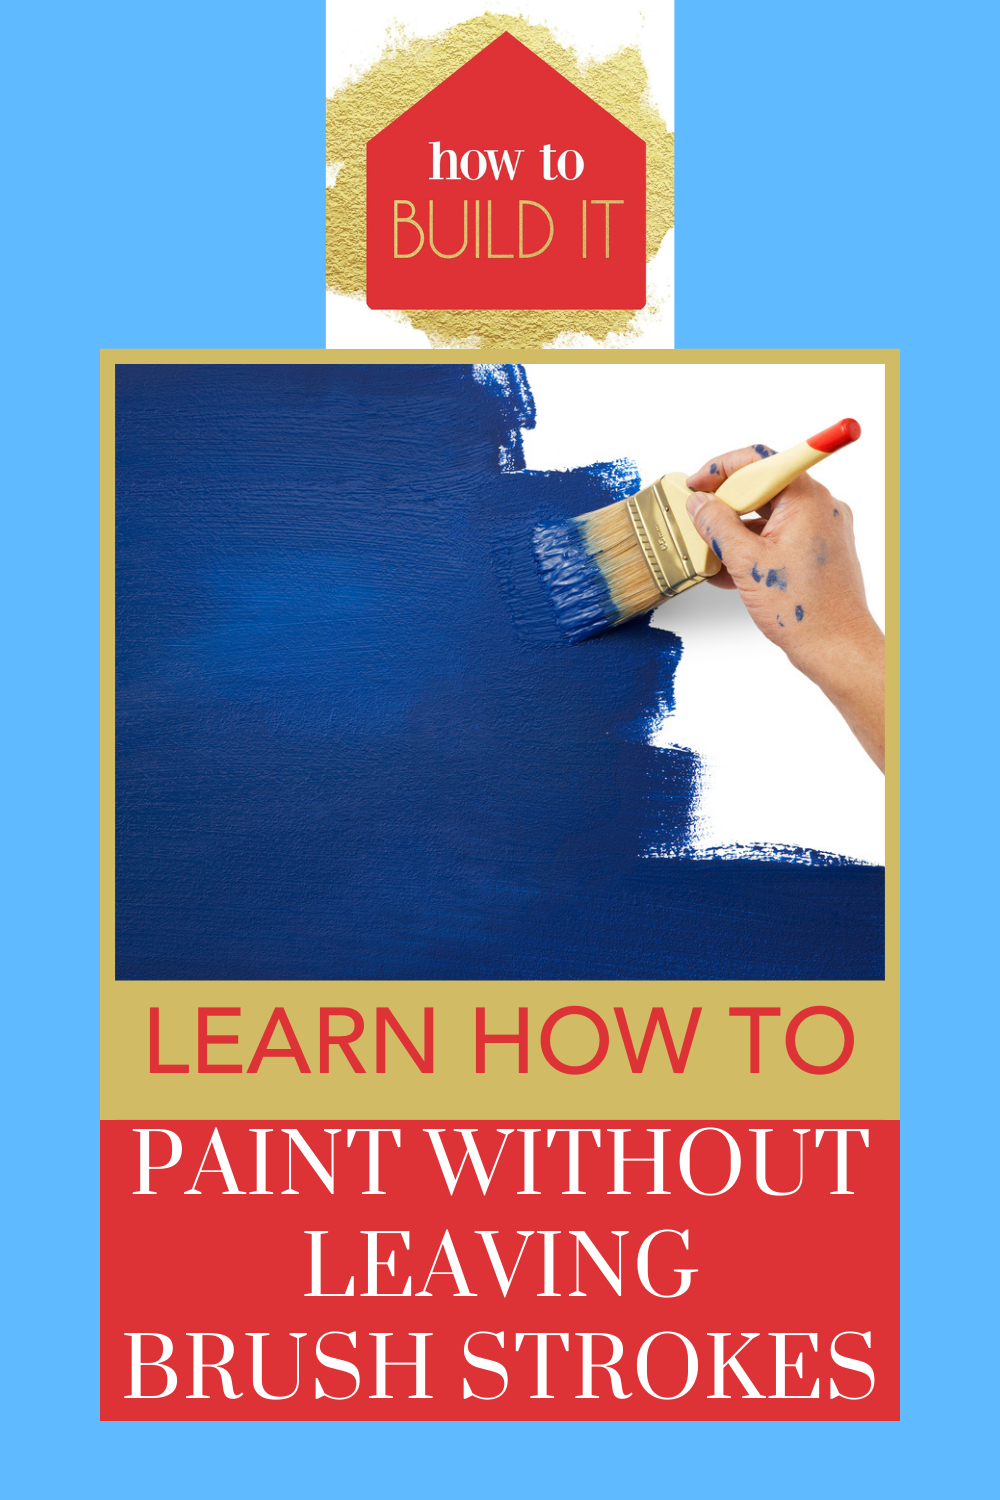 How to Paint without Leaving Brush Strokes